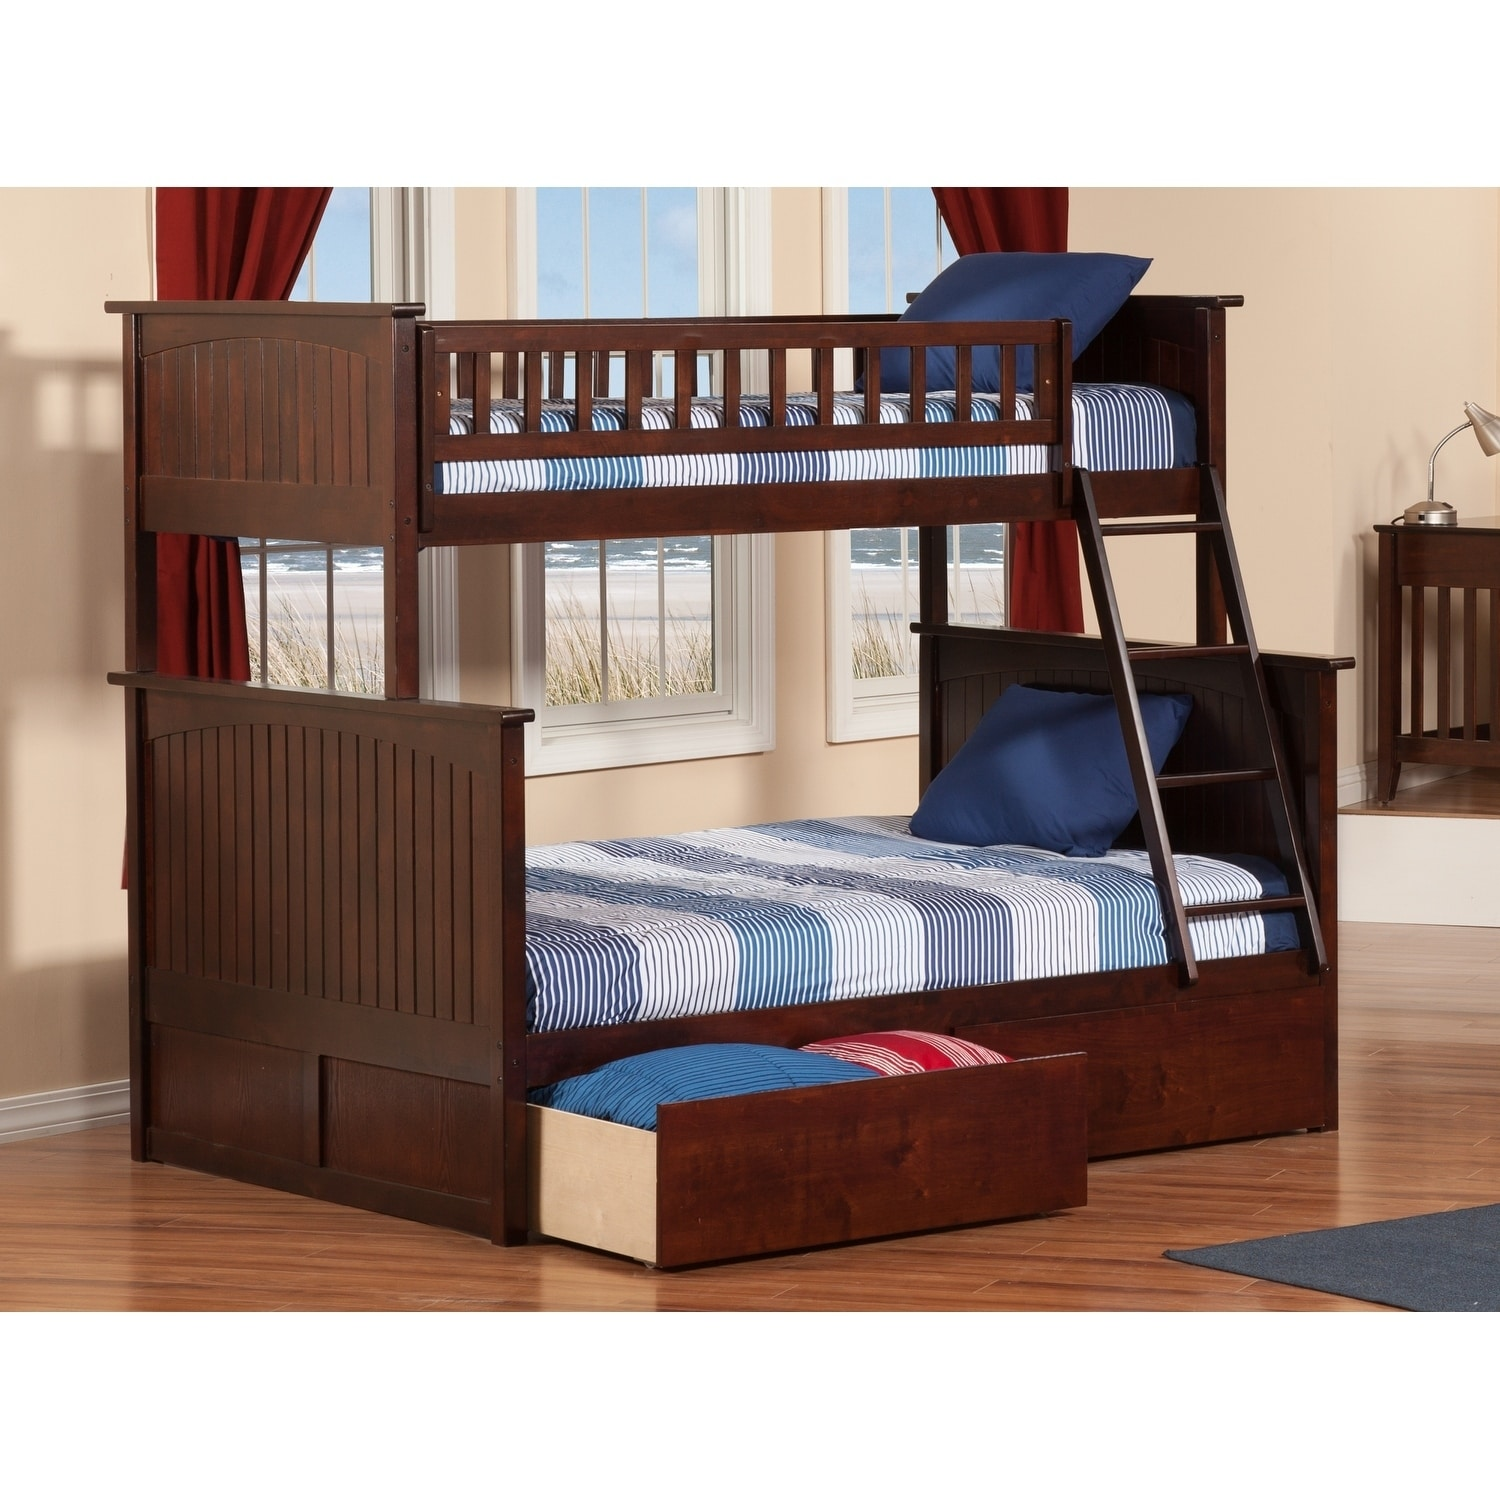 Atlantic Furniture Nantucket Bunk Bed Twin over Full with...